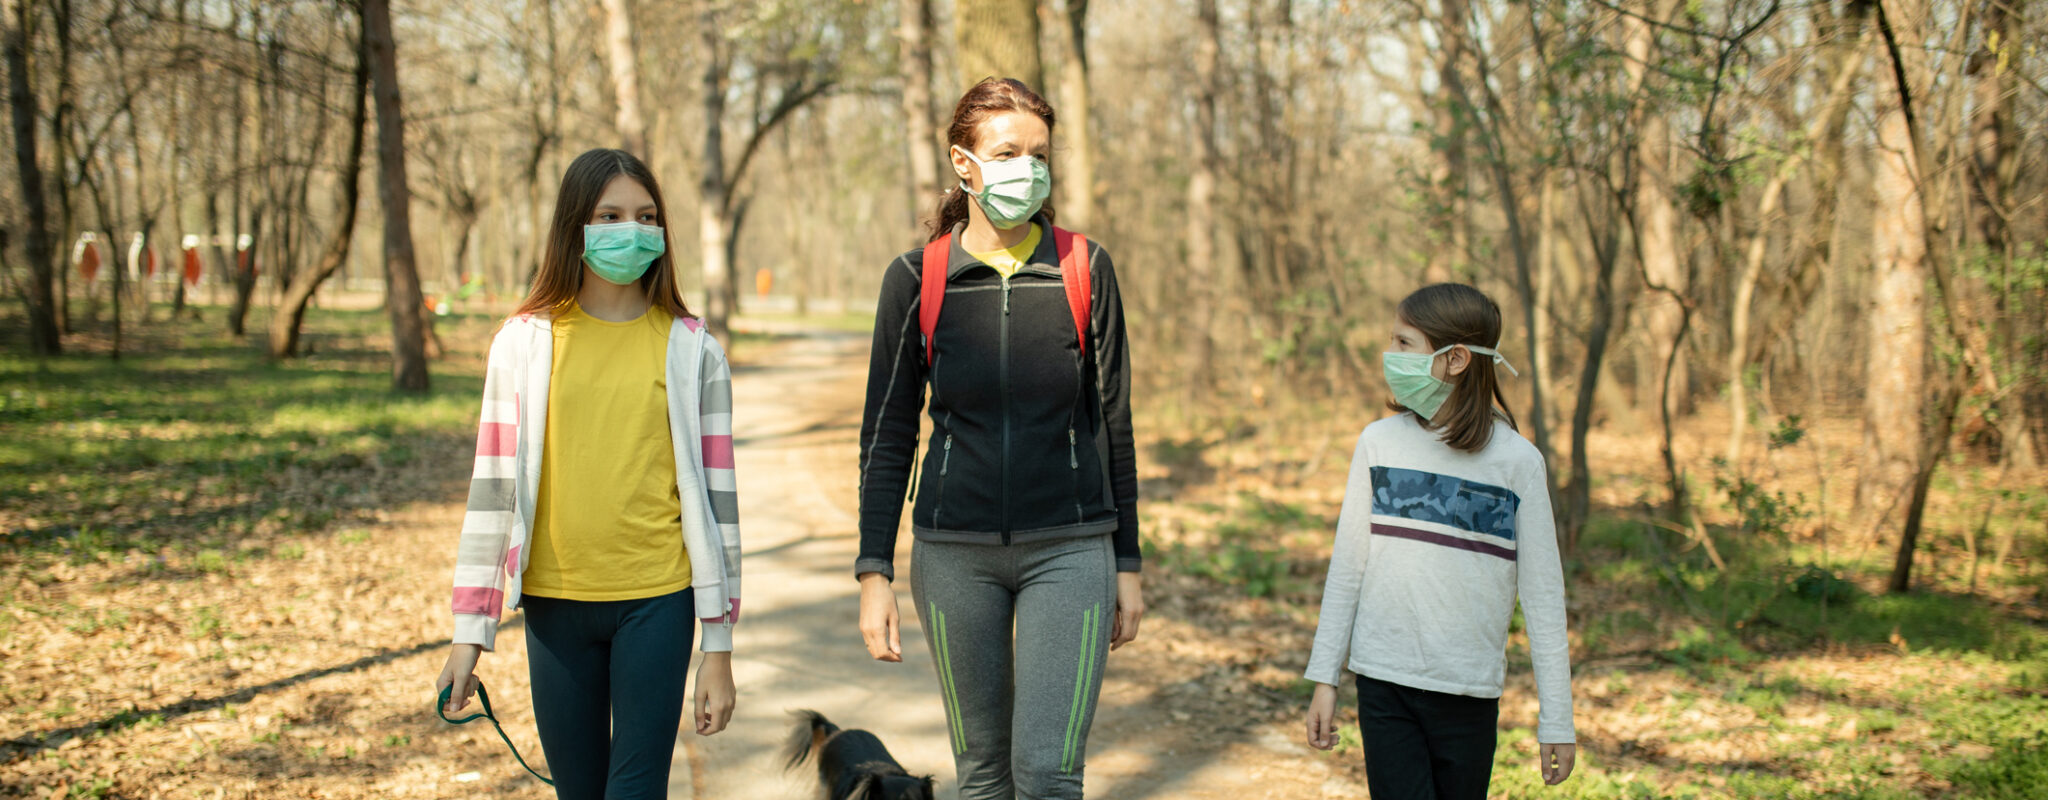 A mother with two children, walking their dog on a trail, wearing masks.